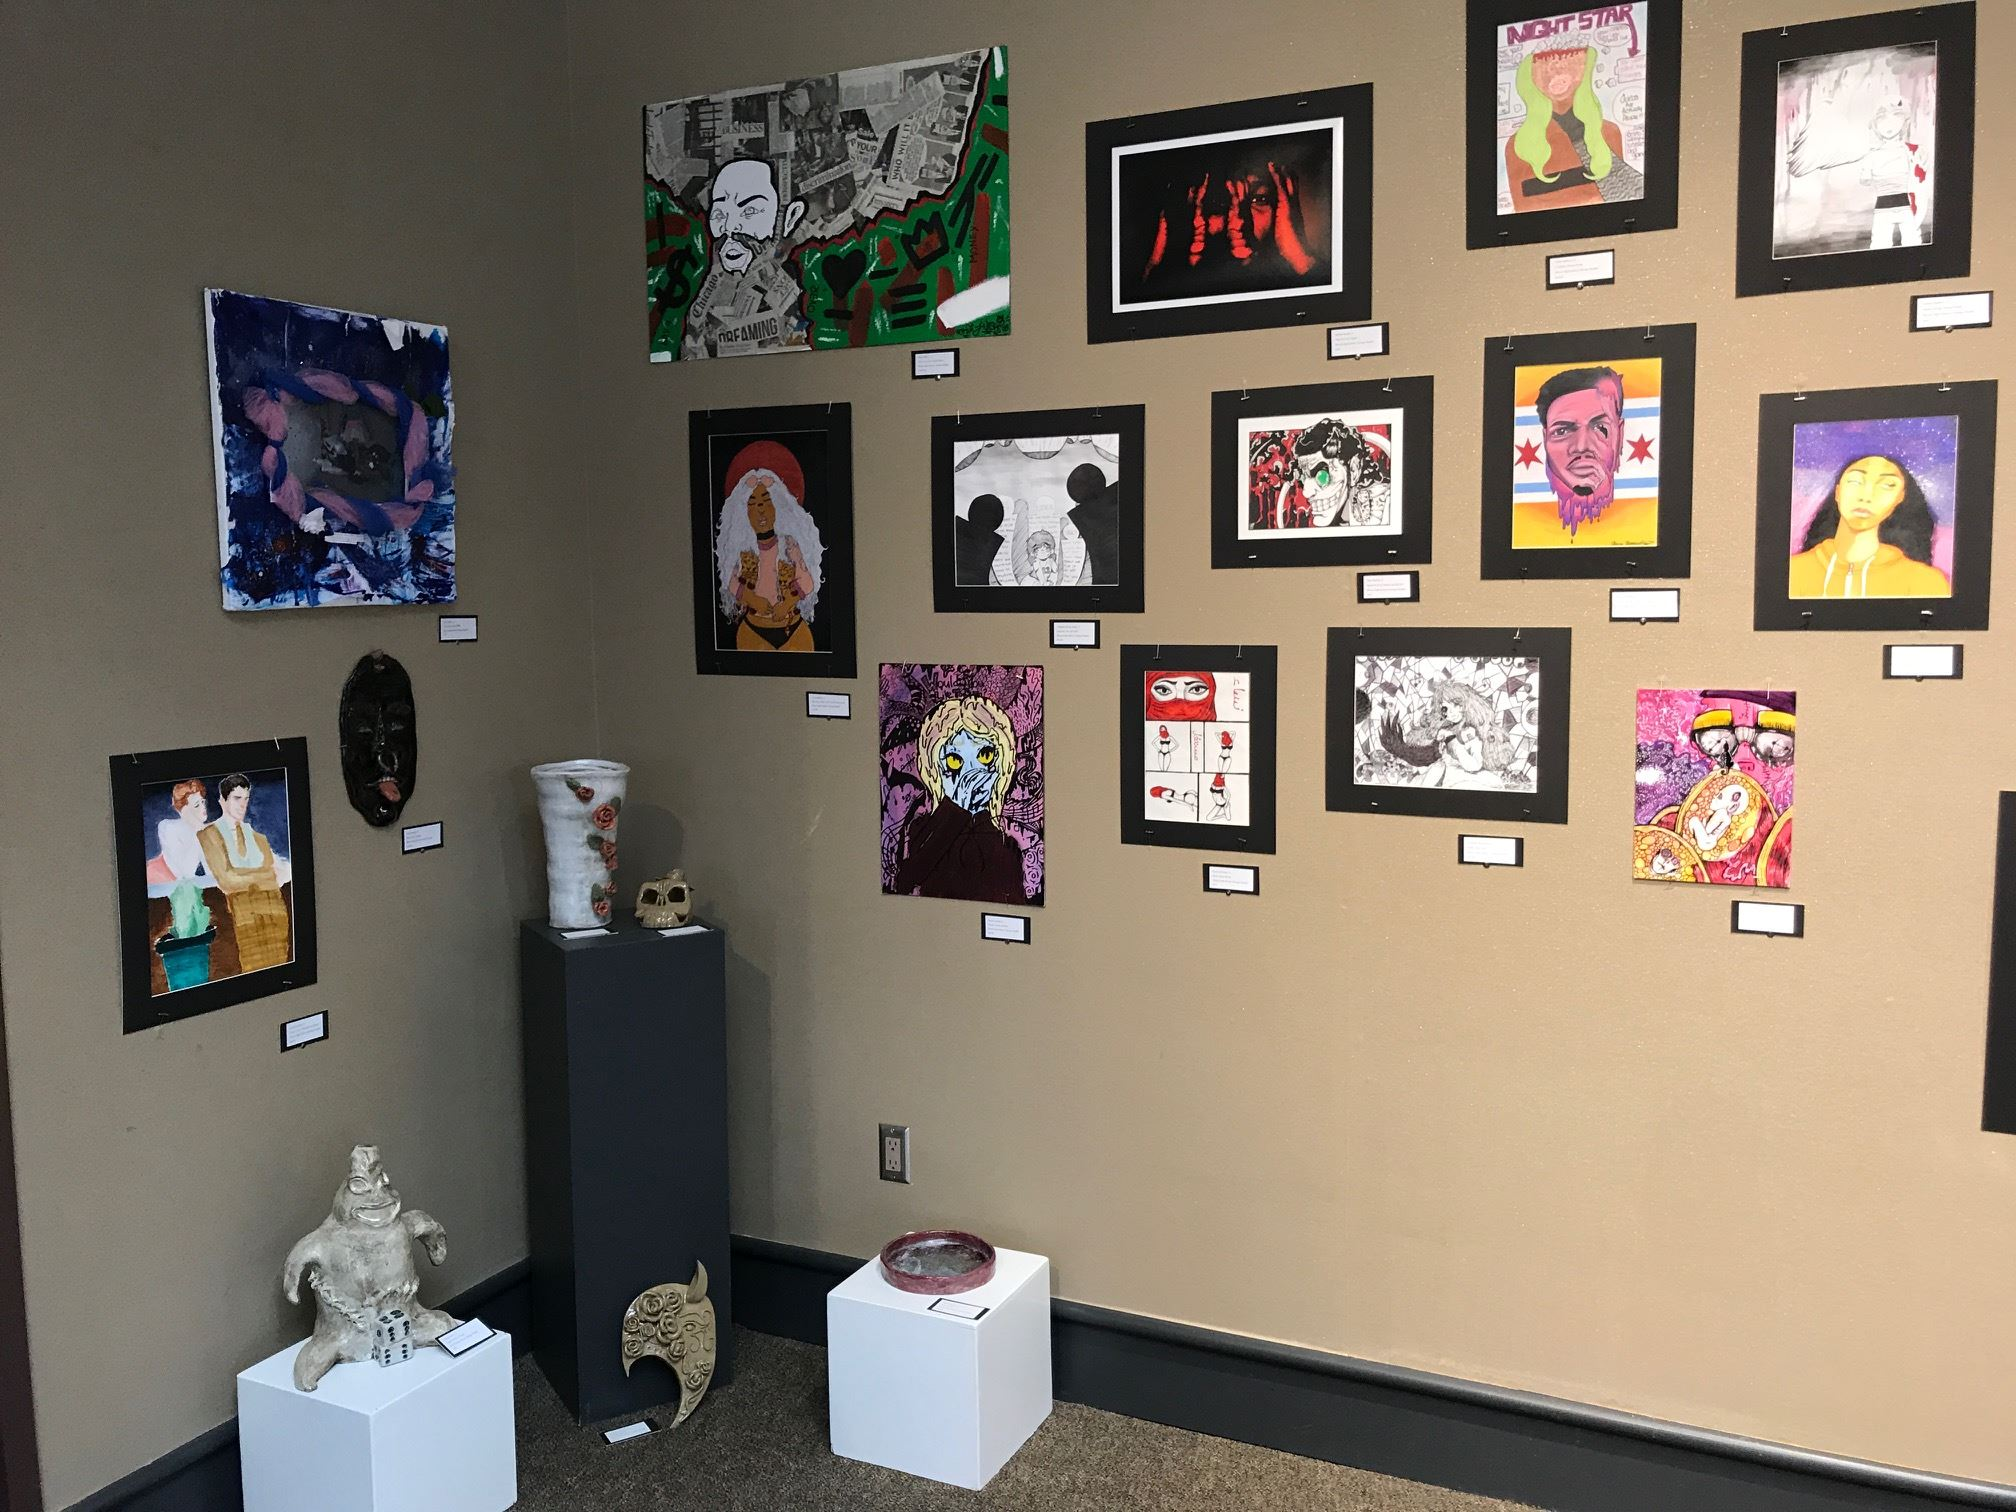 Bloom High School Artist Exhibit at South Shore Arts